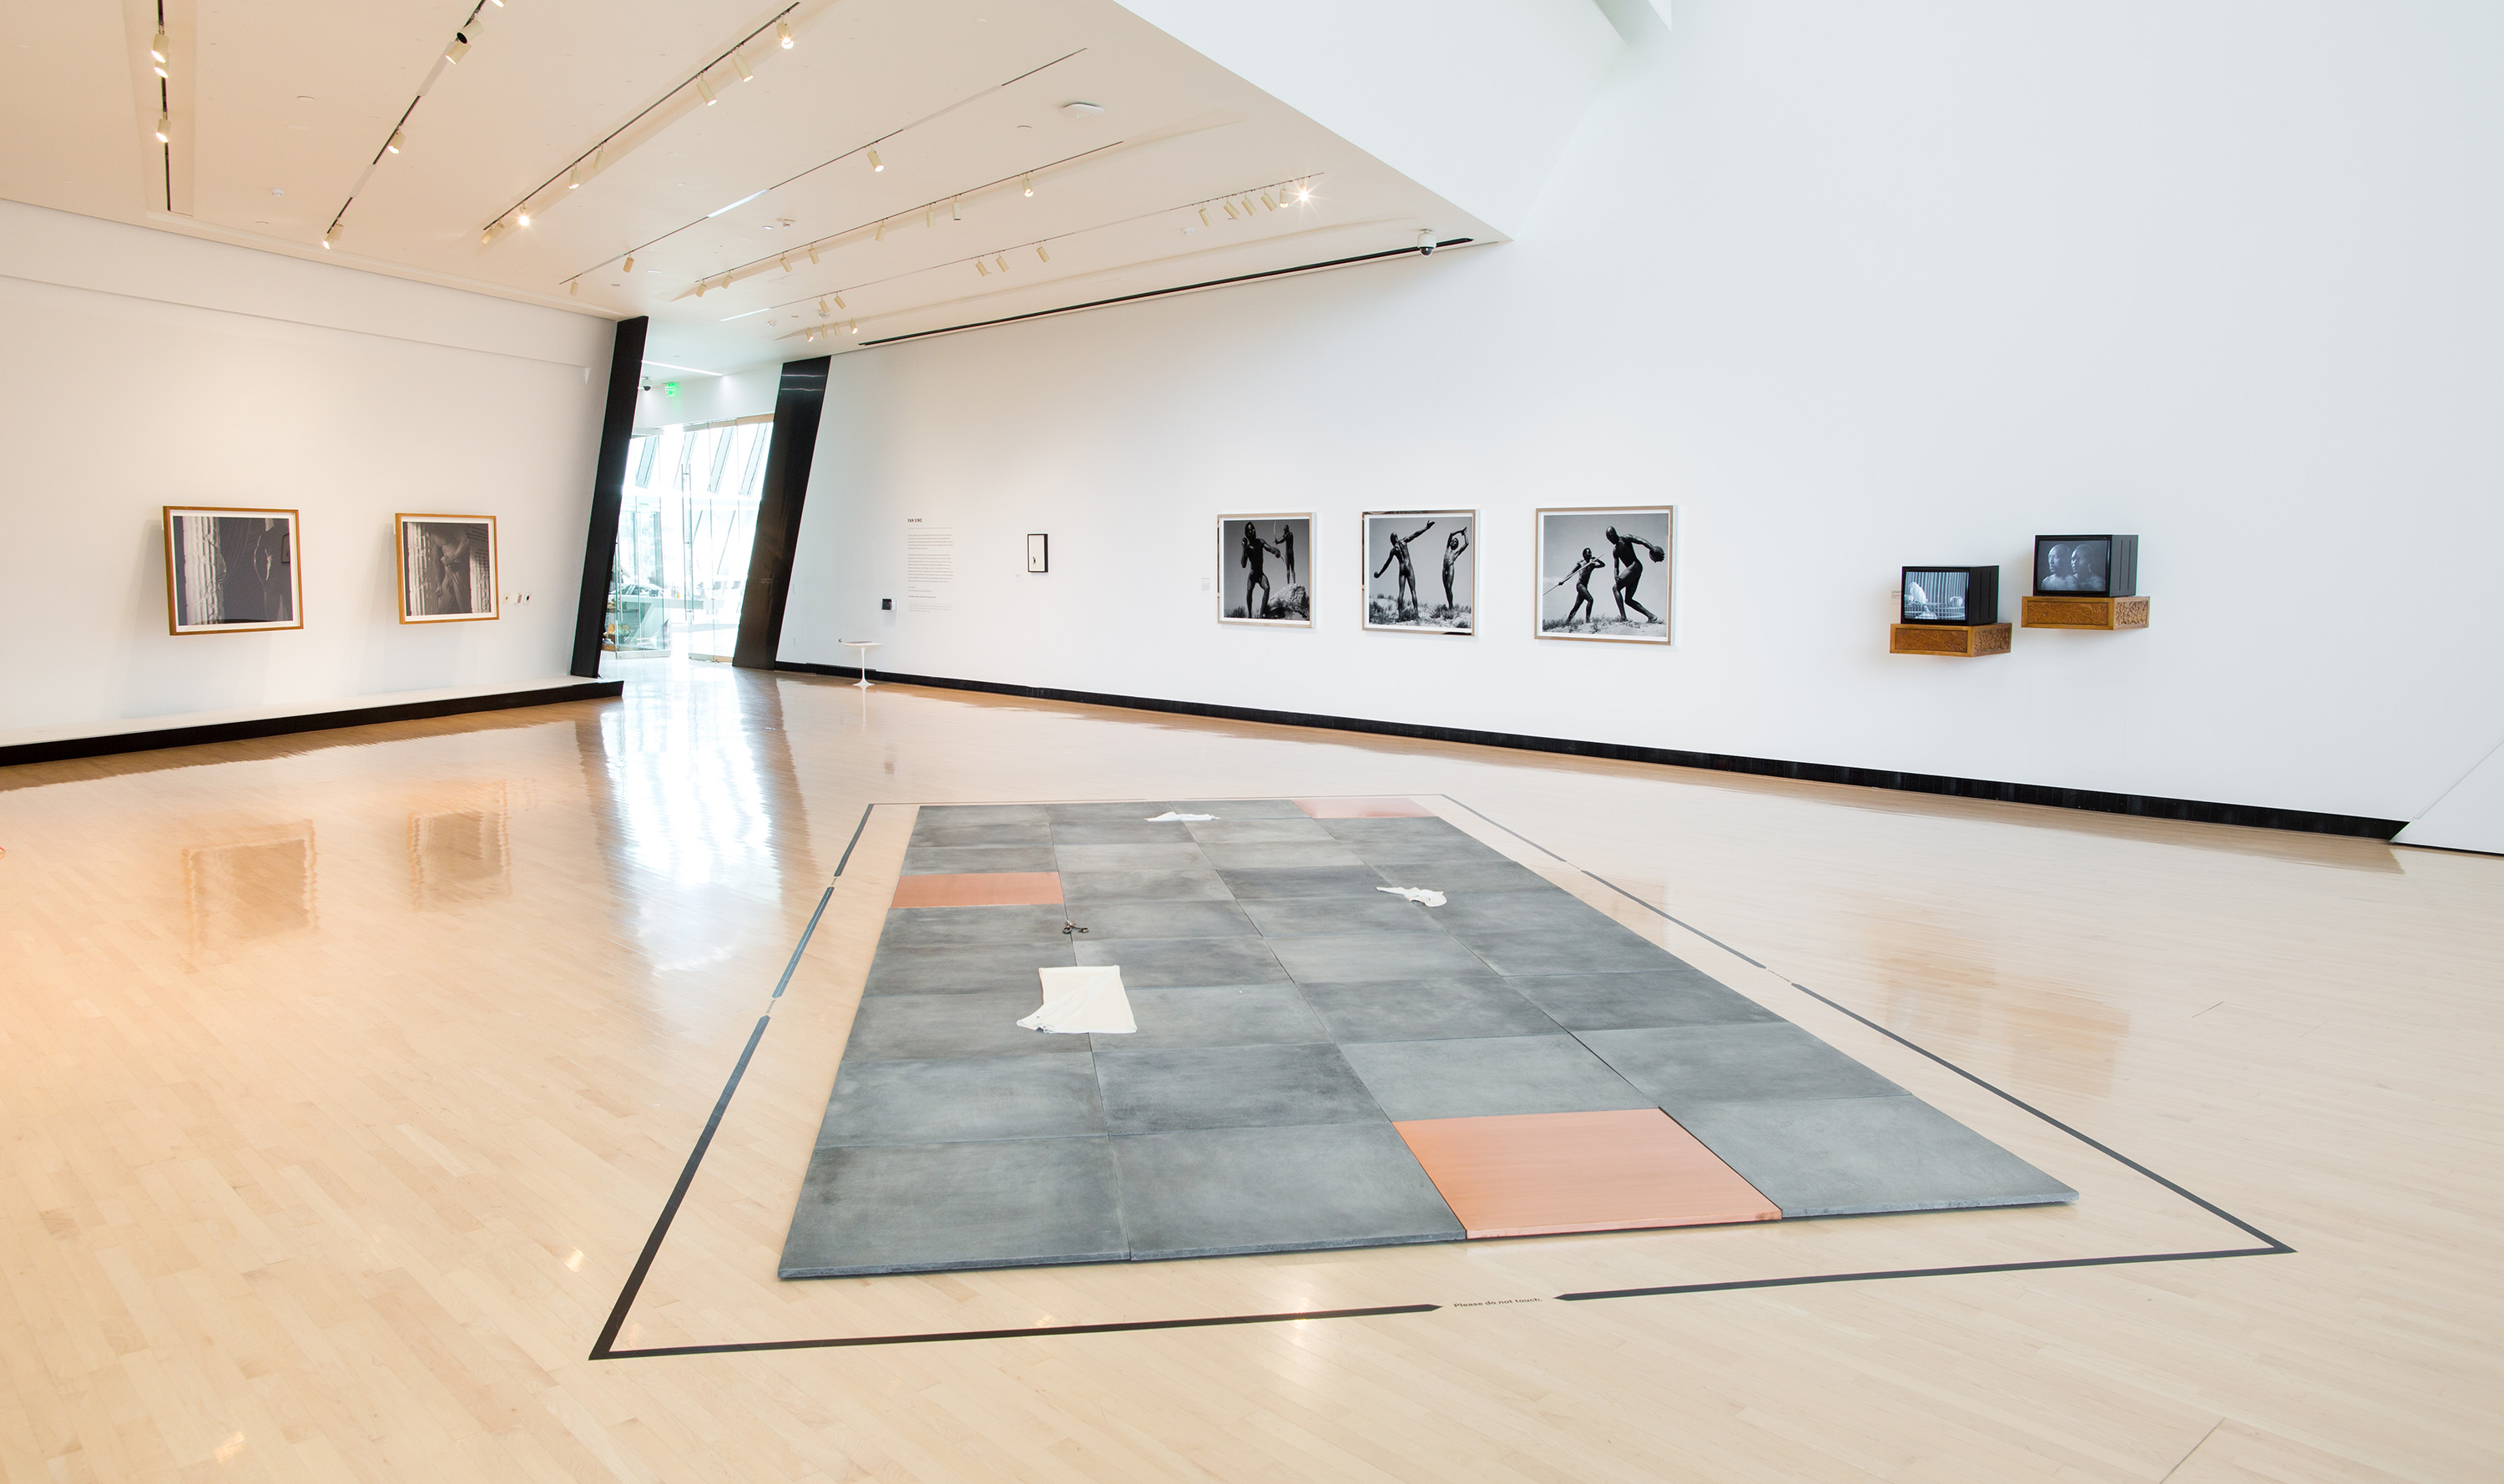 <i>Yan Xing</i>, installation view at the Eli and Edythe Broad Art Museum at Michigan State University, 2016. Photo: Eat Pomegranate Photography